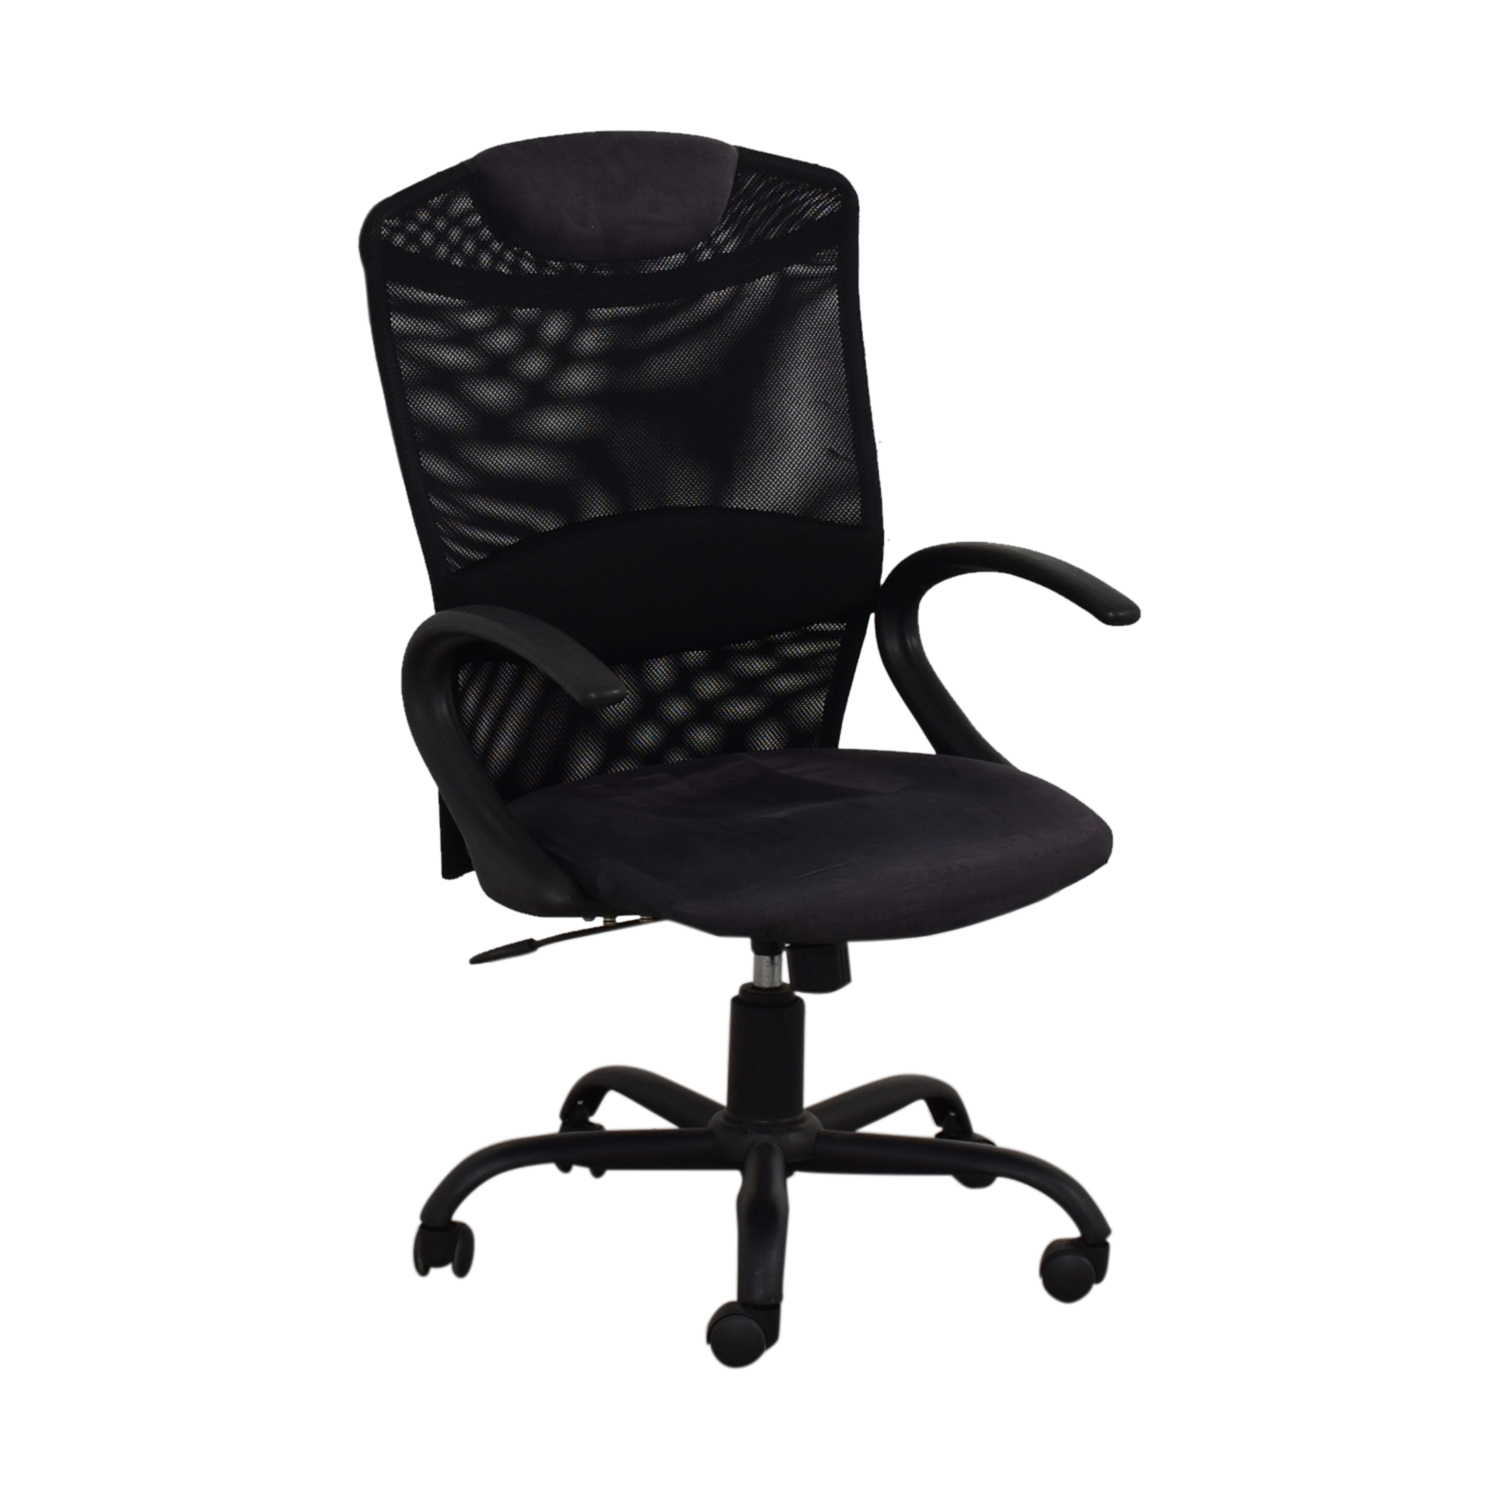 Black Ergonomic Desk Chair second hand